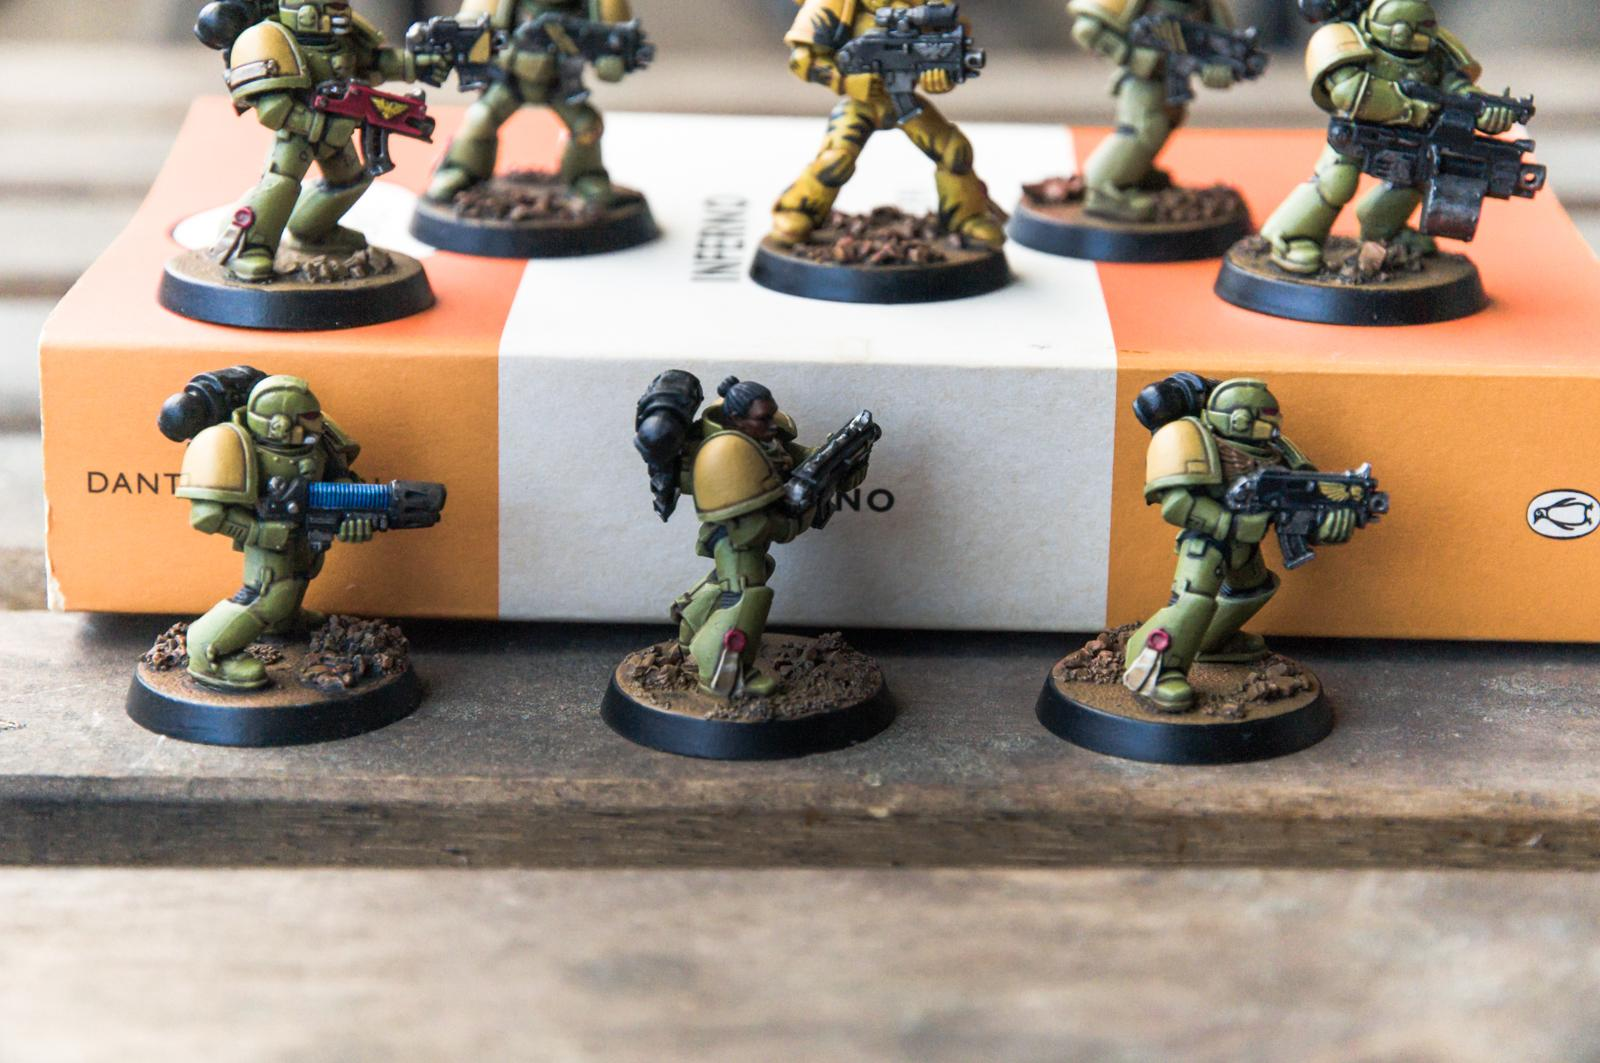 Camouflage, Heavy Bolter, Mantis Warriors, Plasma Guns, Space Marines, Tactical Squad, Tranquillity, Veteran Sergeant